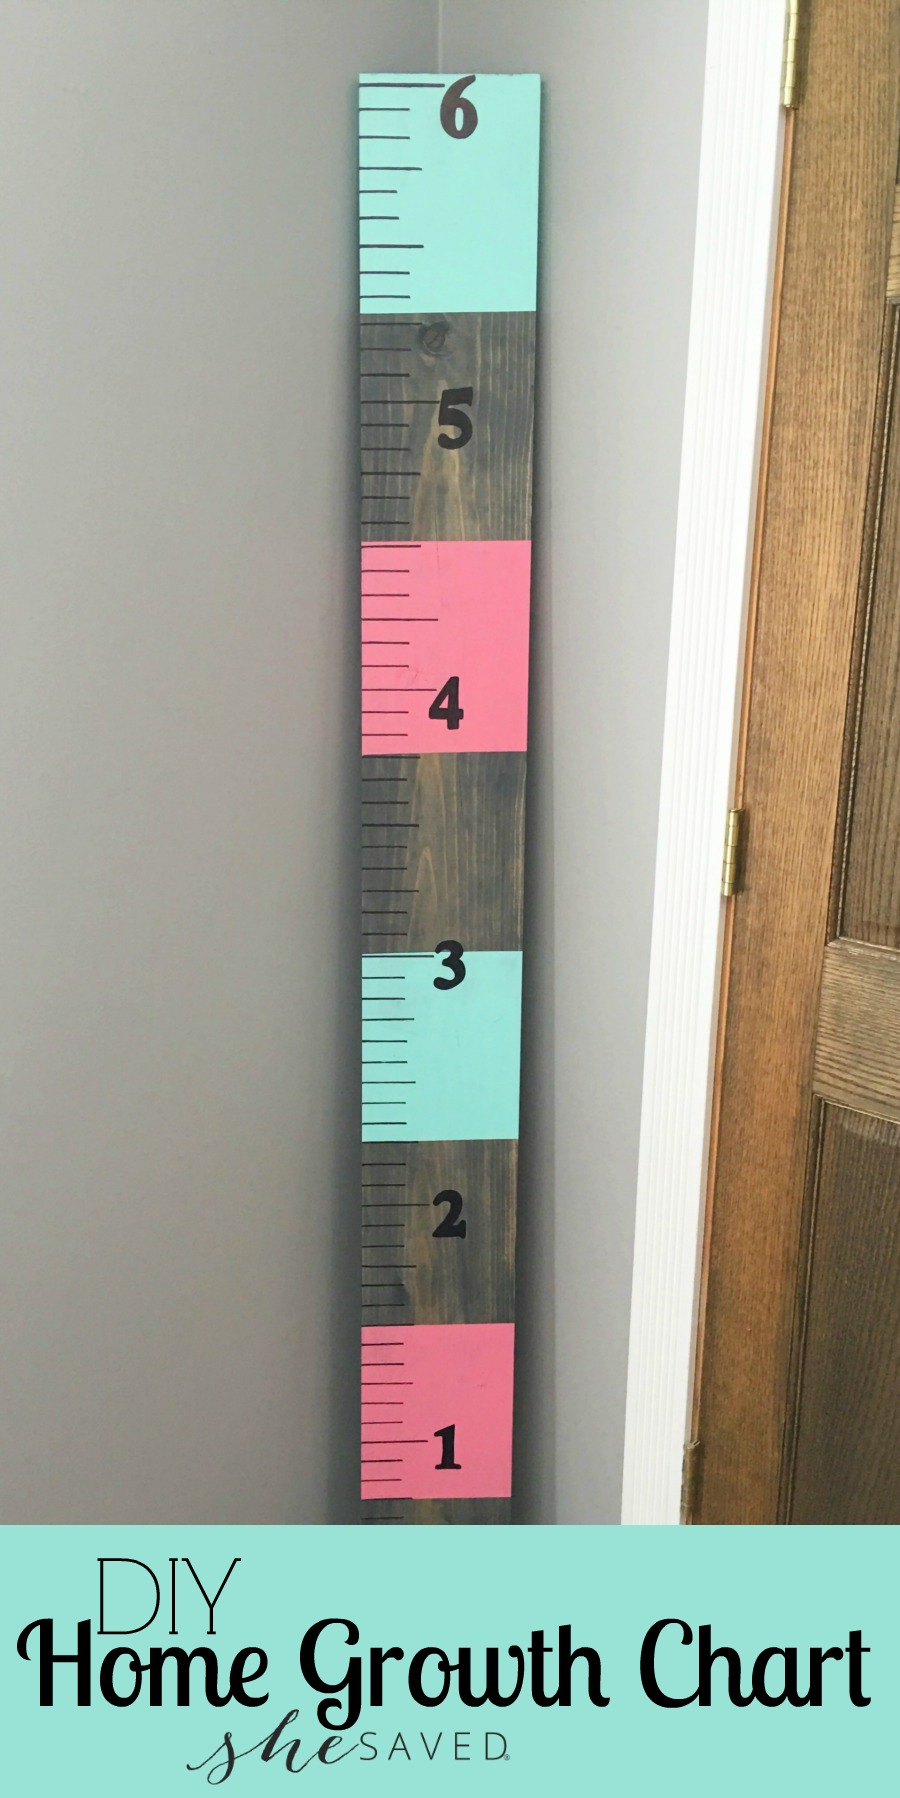 Easy To Make Wooden Childs Home Growth Chart